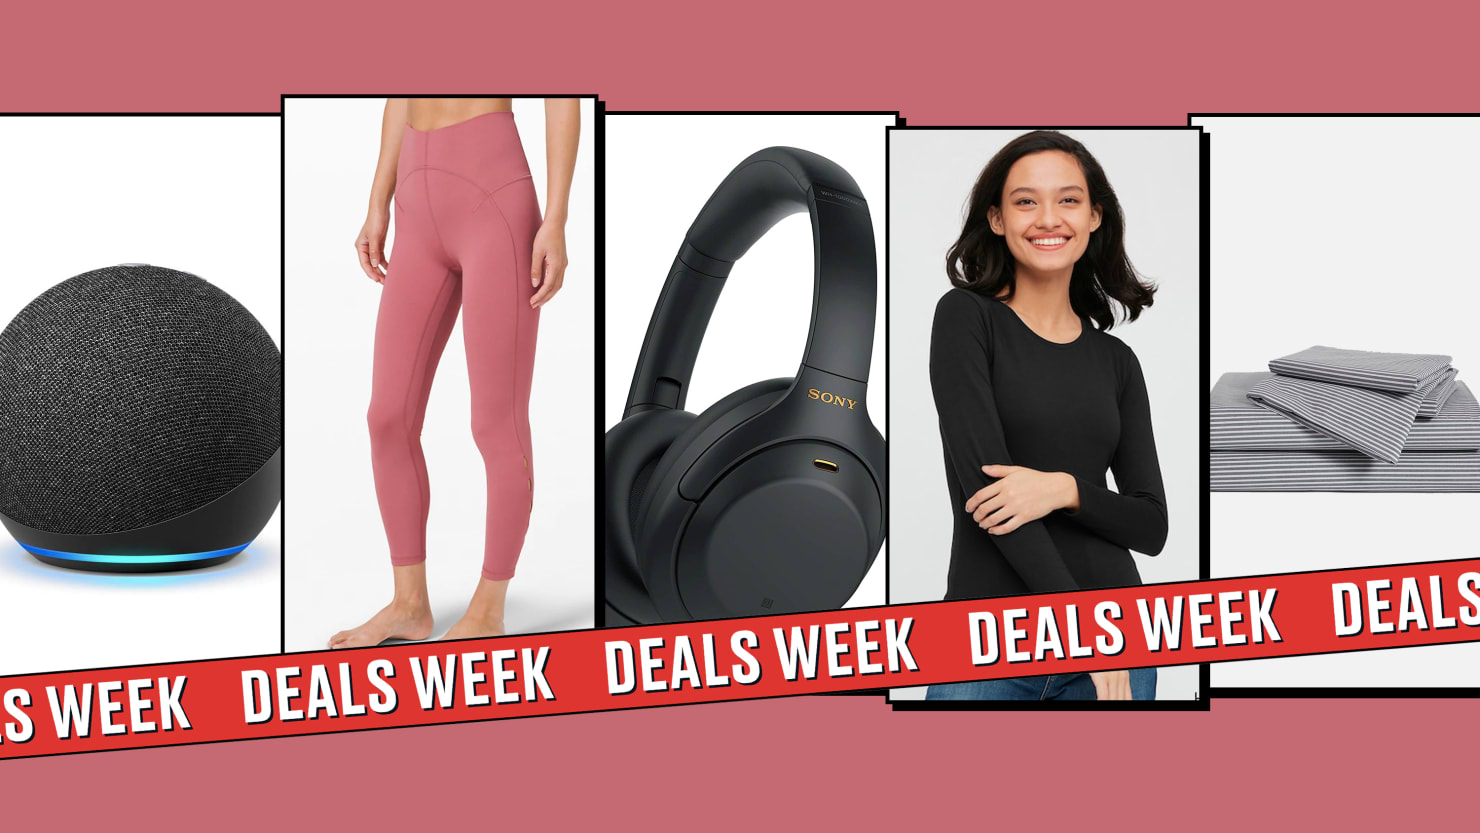 The Cyber Monday Deals That Are Still Going on